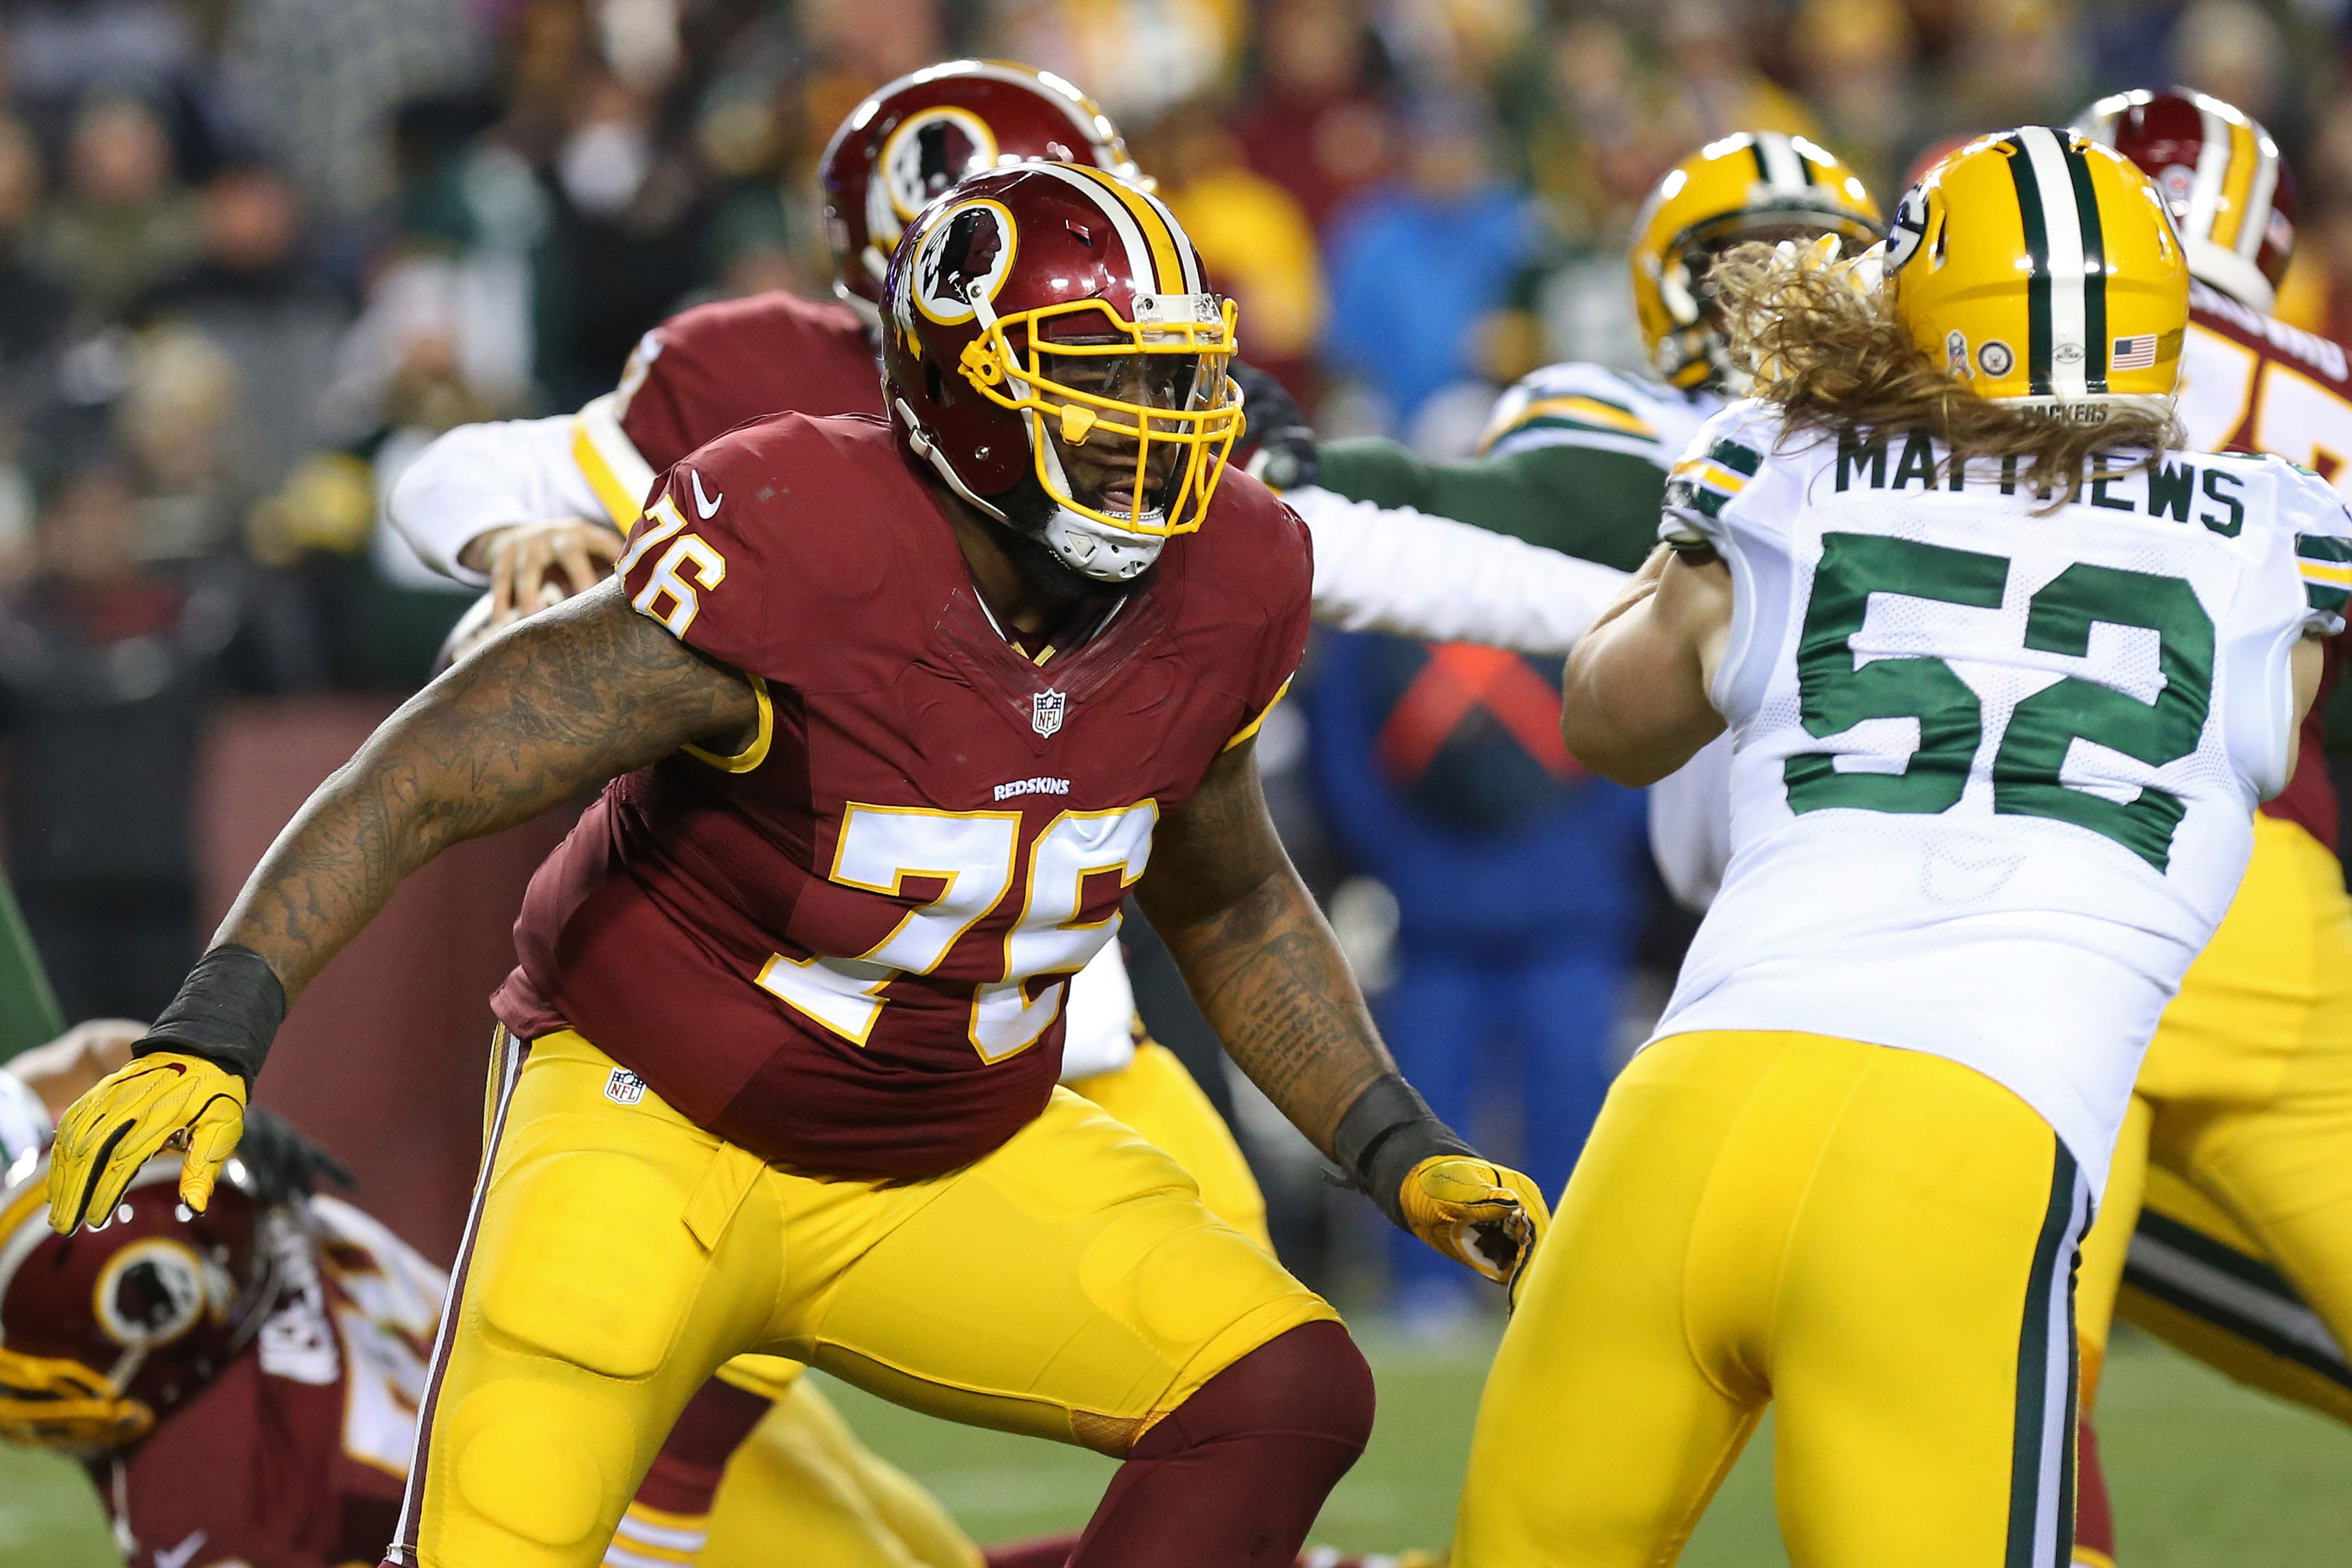 Trent Williams looks to lead young improving Redskins offensive